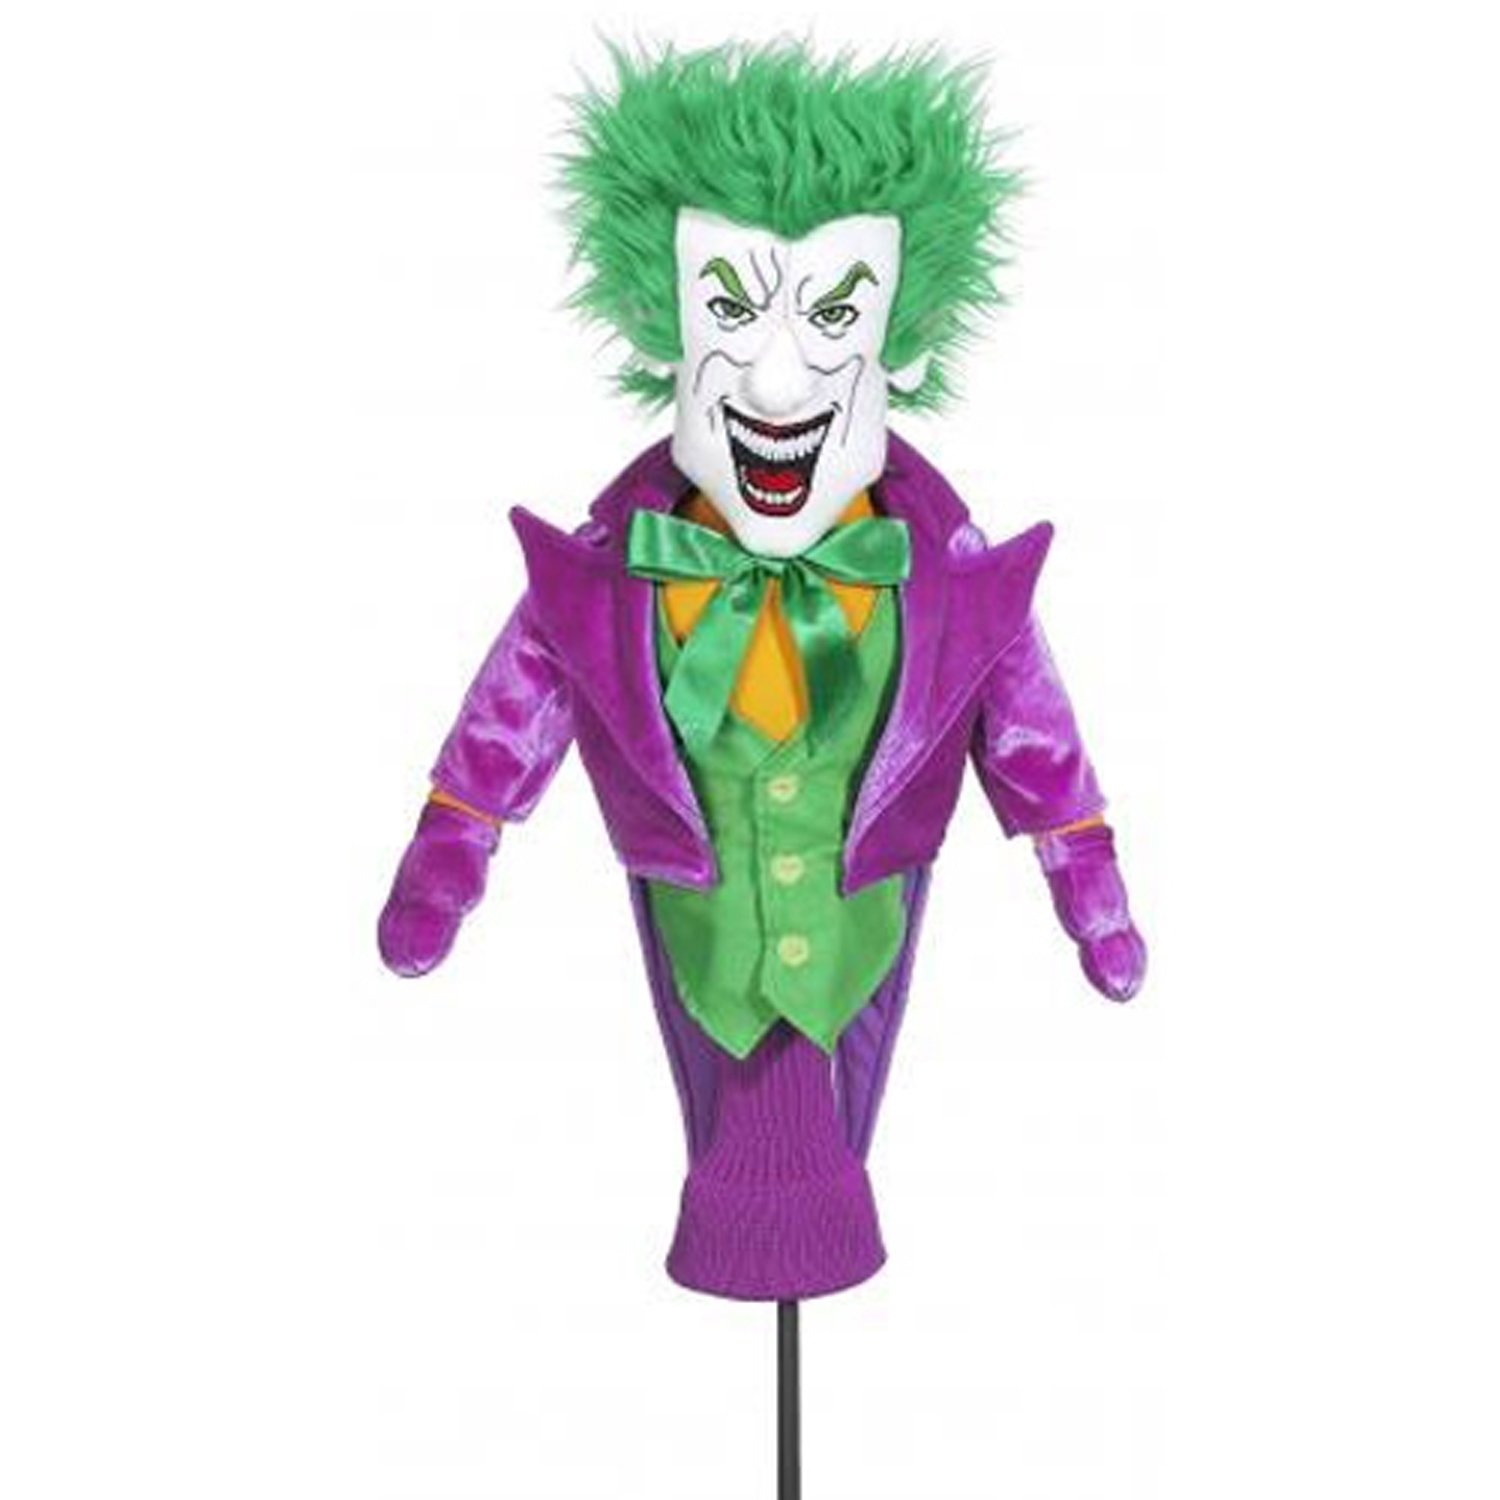 Golf Head Cover Joker The Dark Knight 460cc Driver Wood Sporting Goods Headcover